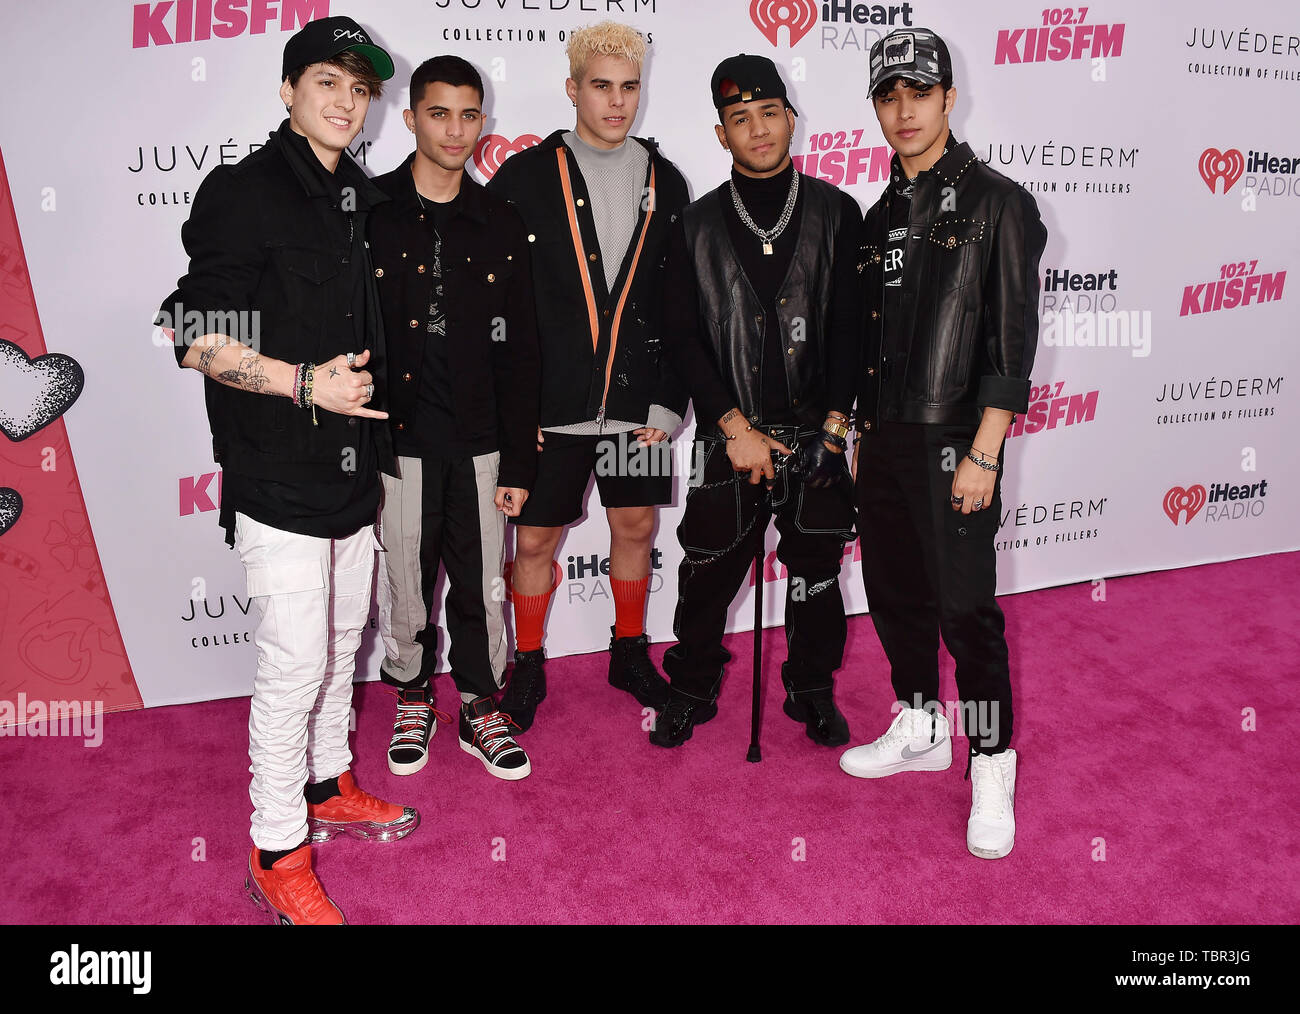 Cnco Stock Photos & Cnco Stock Images - Alamy